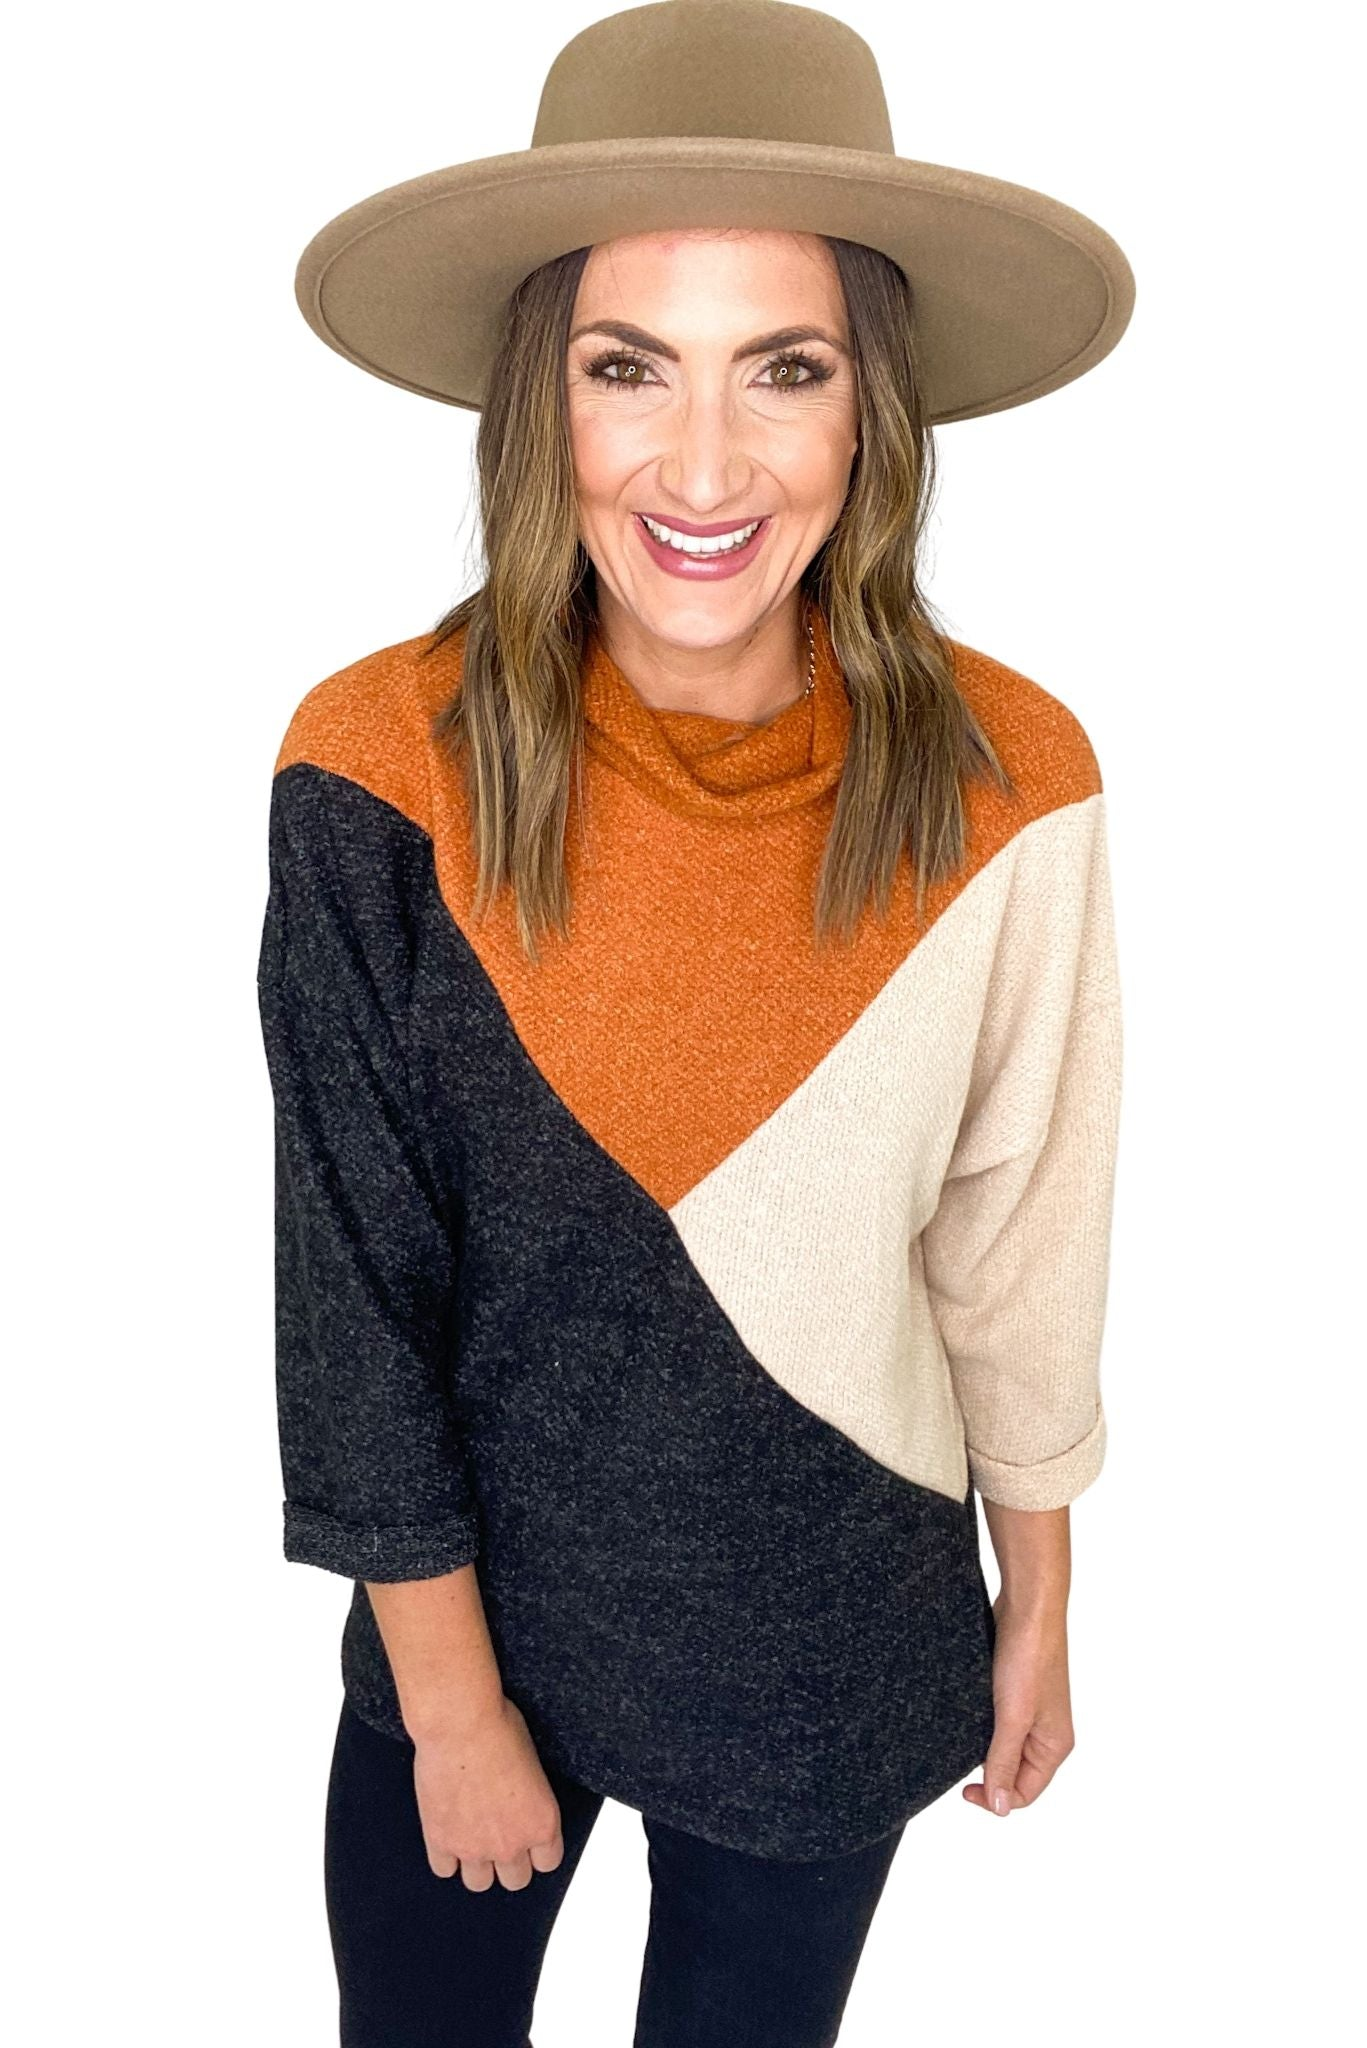 Charcoal Pumpkin and Tan Geometric Color Block Turtleneck Top